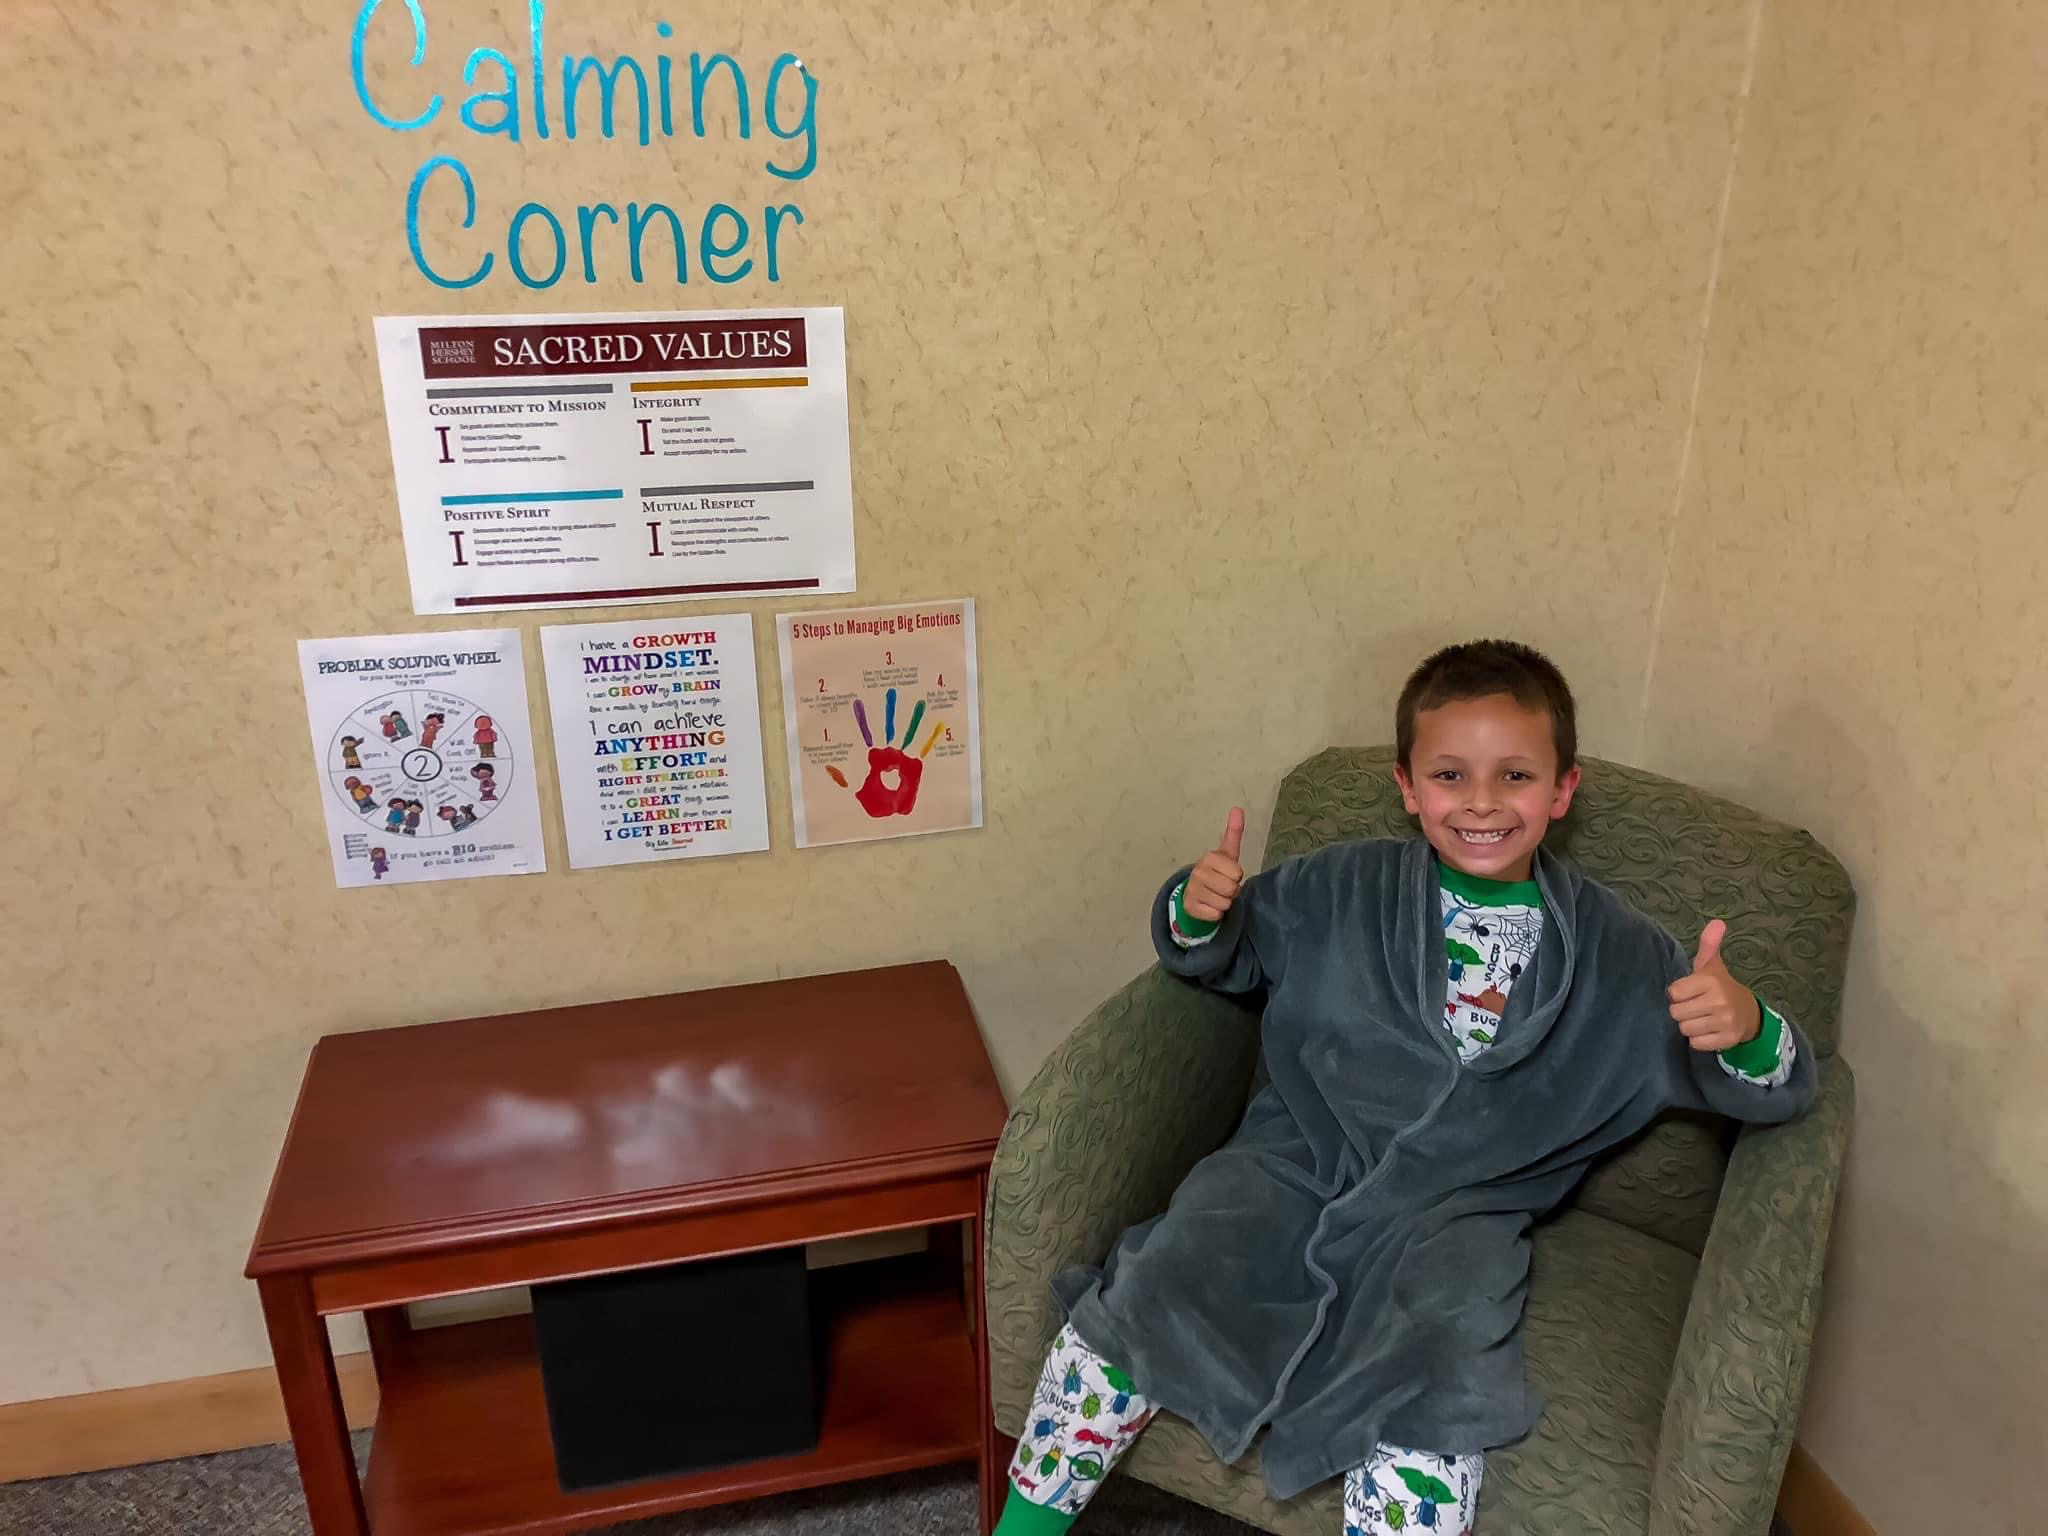 A Milton Hershey School students poses for a photo in the calming corner that his houseparents set up in the student home.